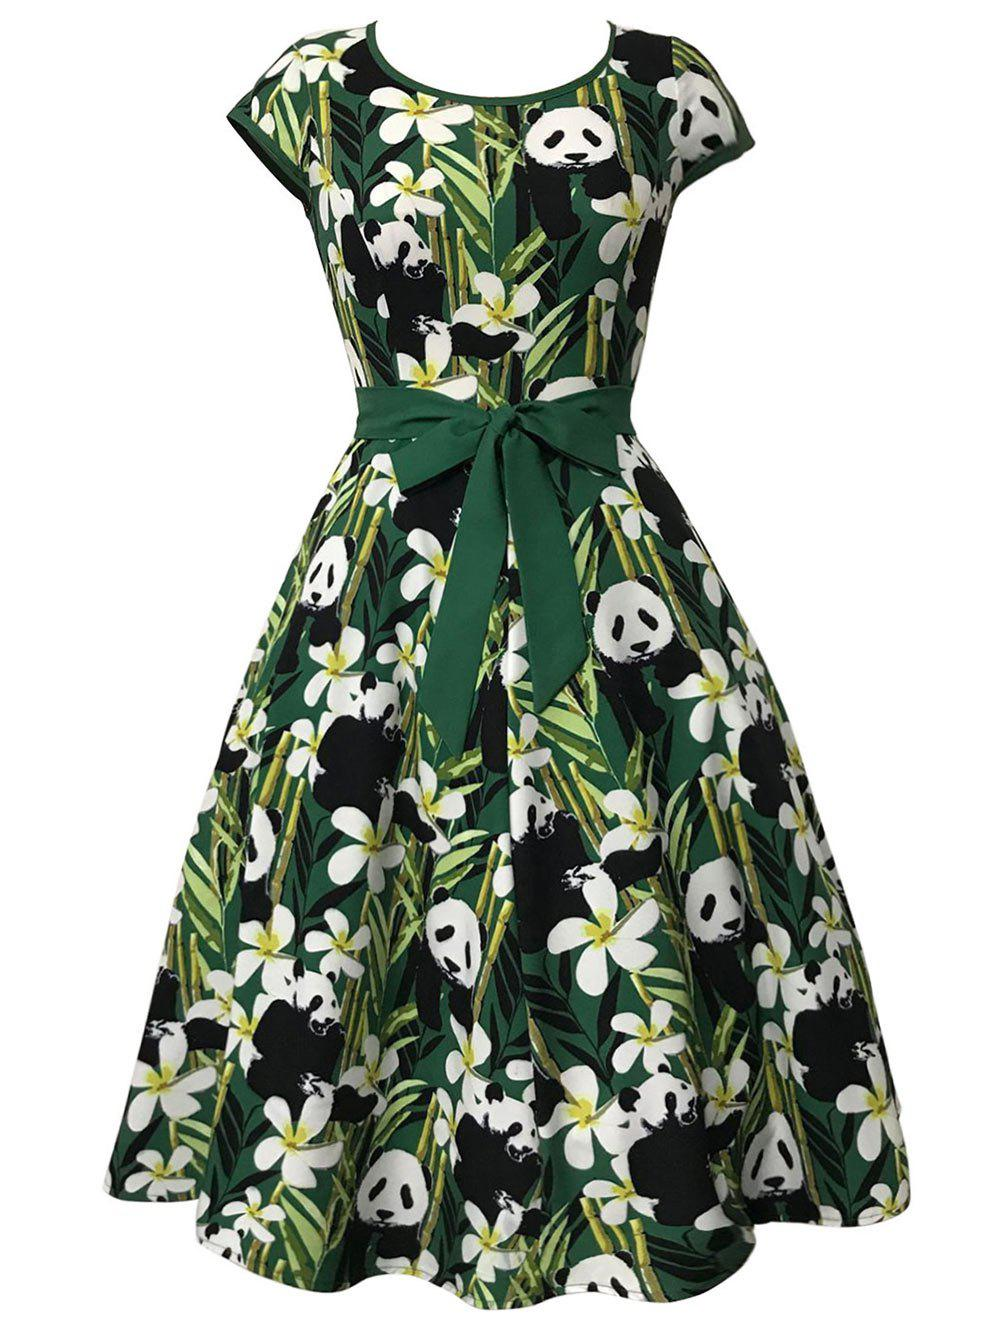 Affordable Bamboo and Panda Print Vintage Dress